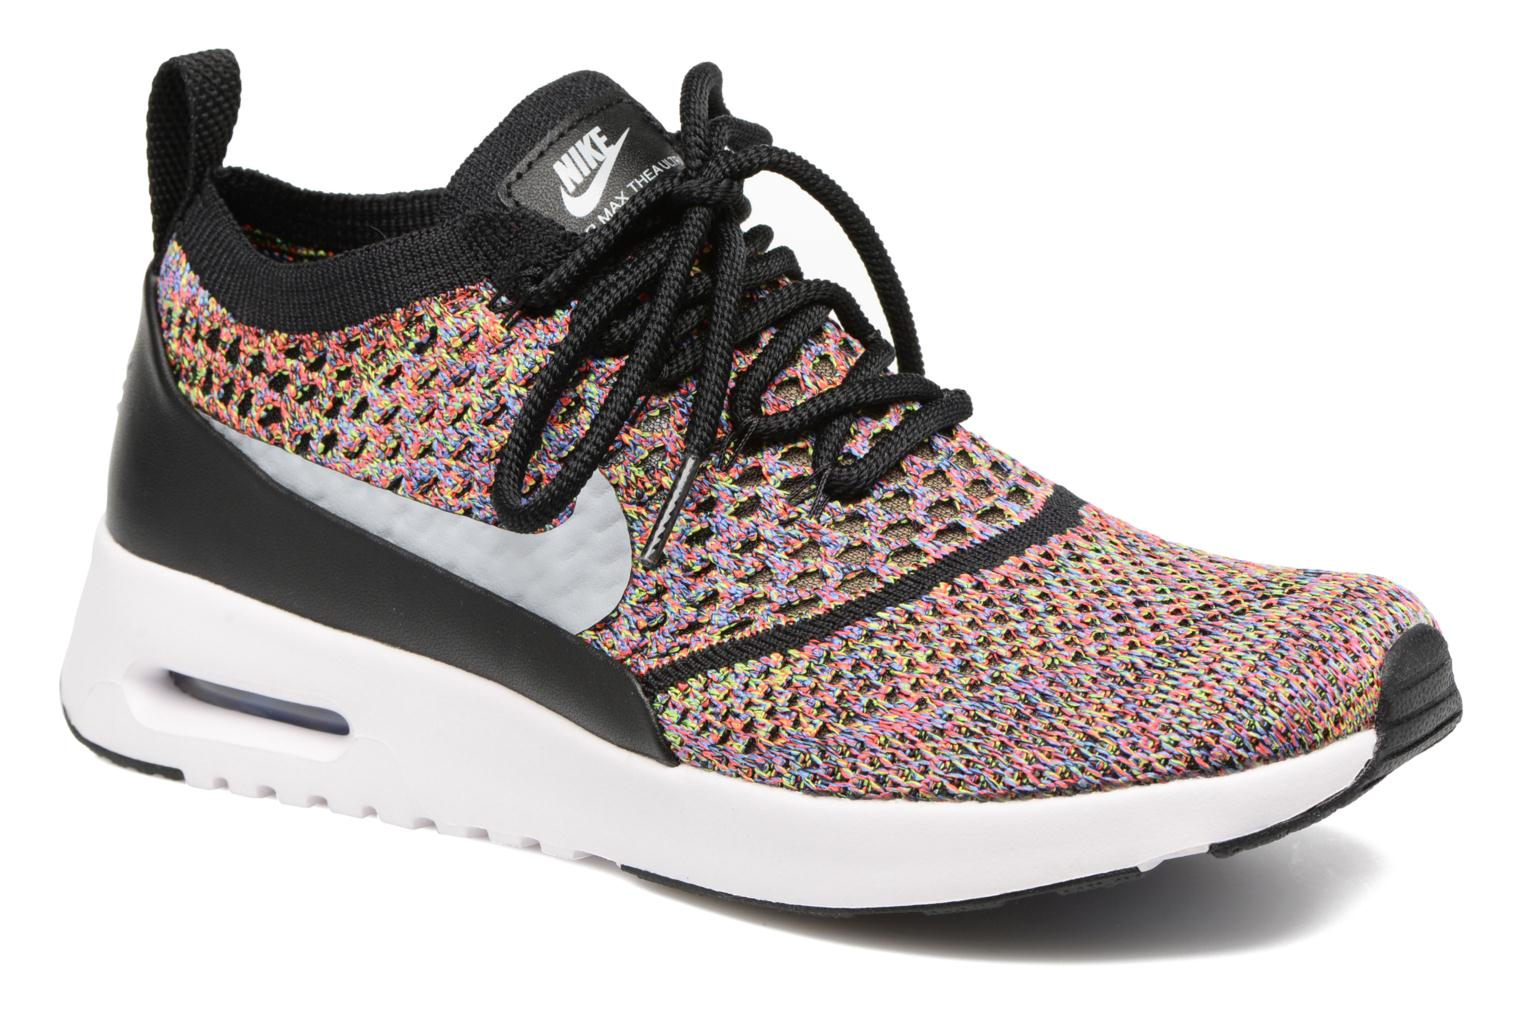 purchase cheap 11662 770fb Nike W Nike Air Max Thea Ultra Fk (Multicolore) - Baskets chez Sarenza  (280882) GH8HUA1Z - destrainspourtous.fr